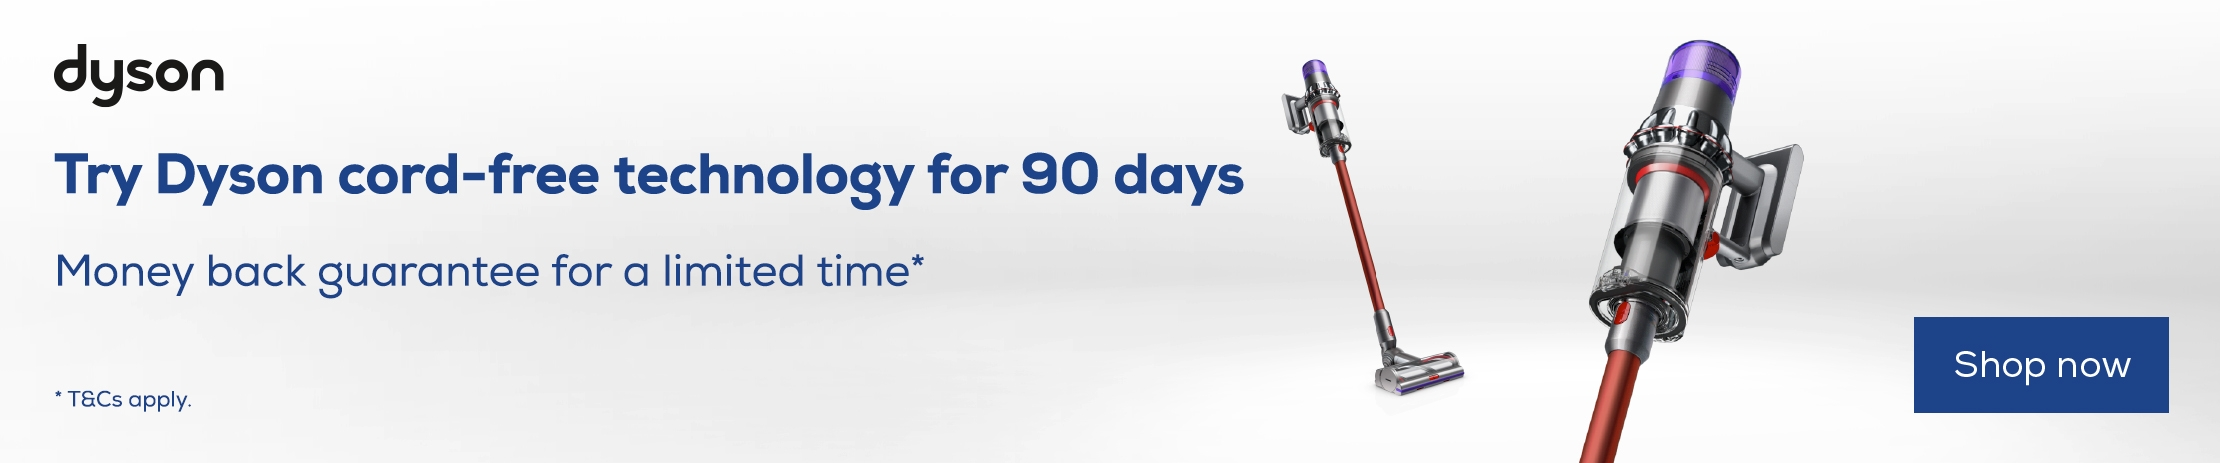 Dyson Cord Free Promotion